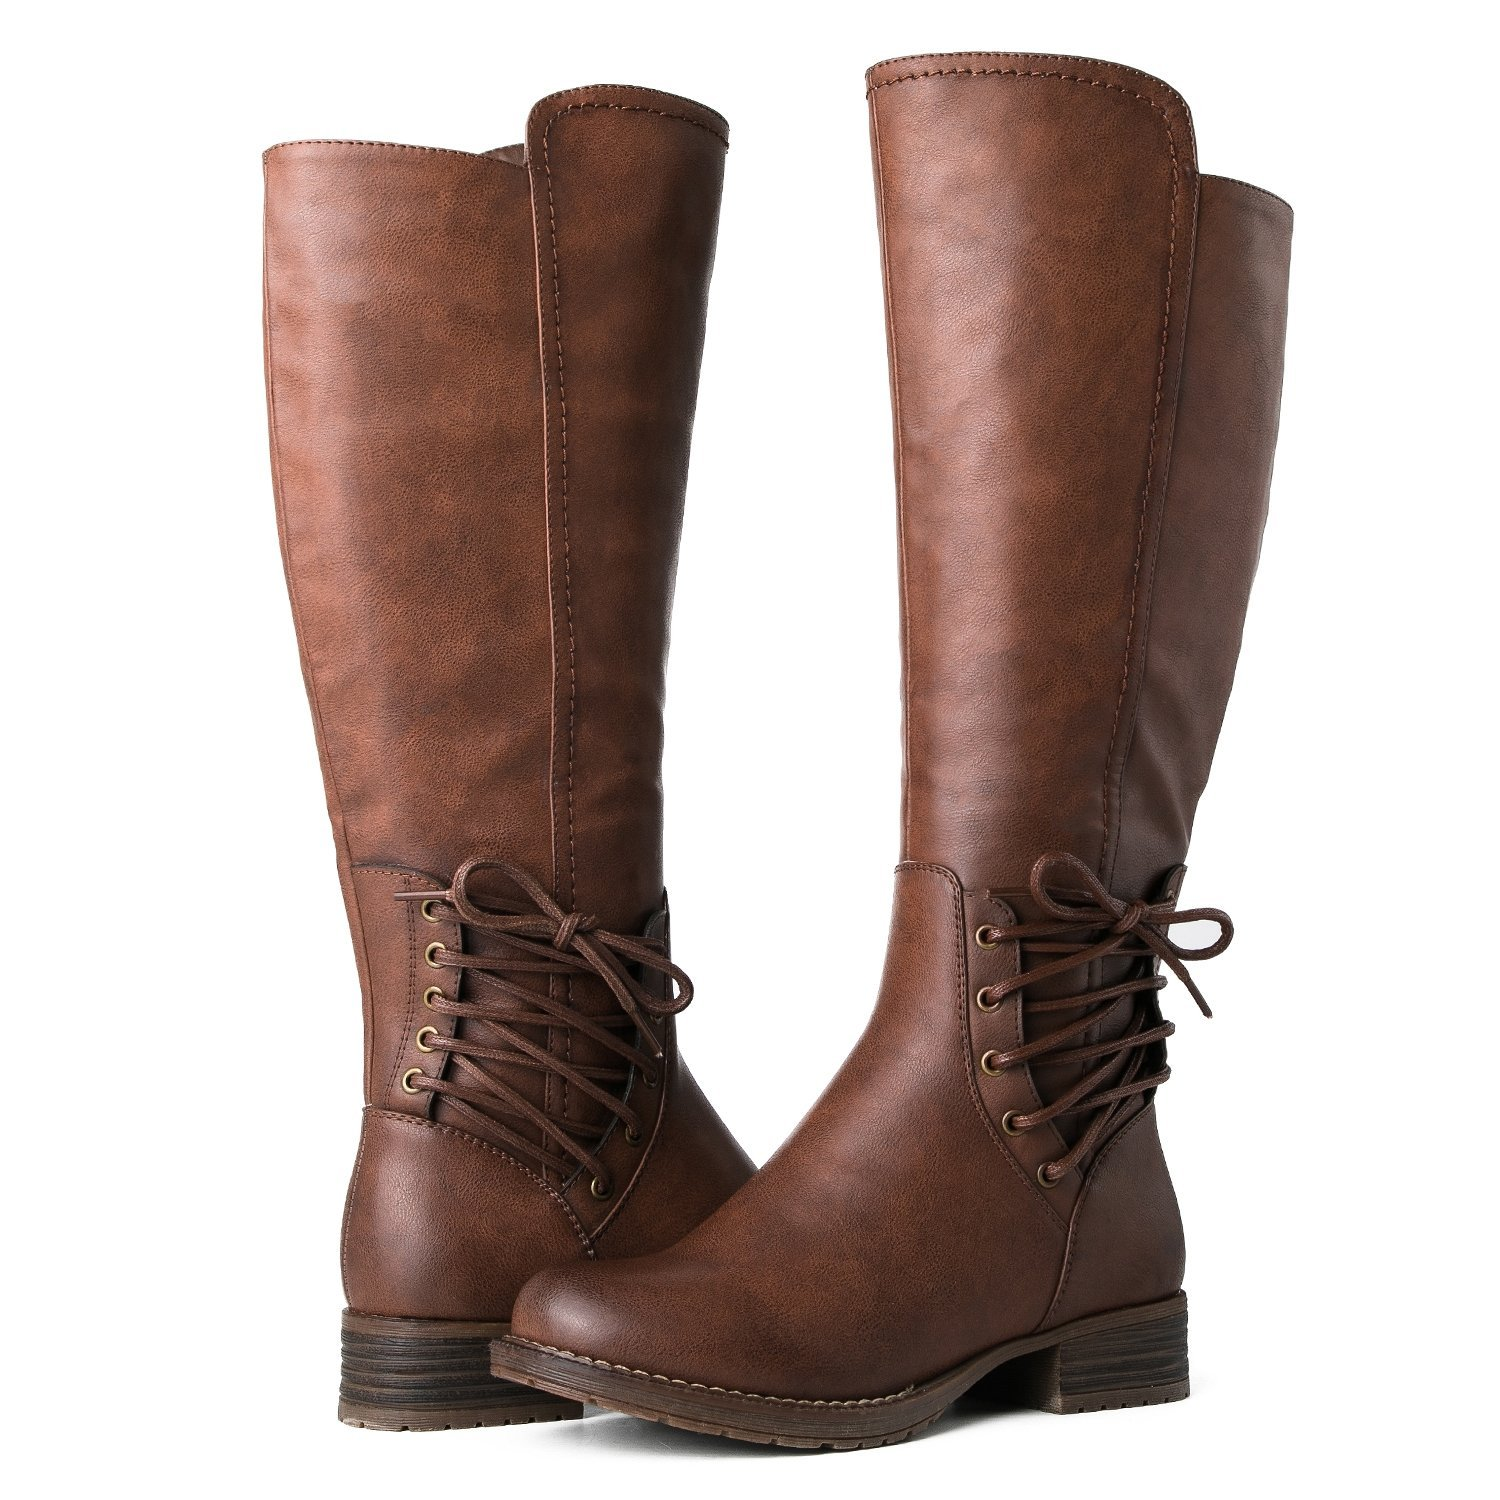 Review of GLOBALWIN Women's 17YY11 Fashion Boots for wide calf